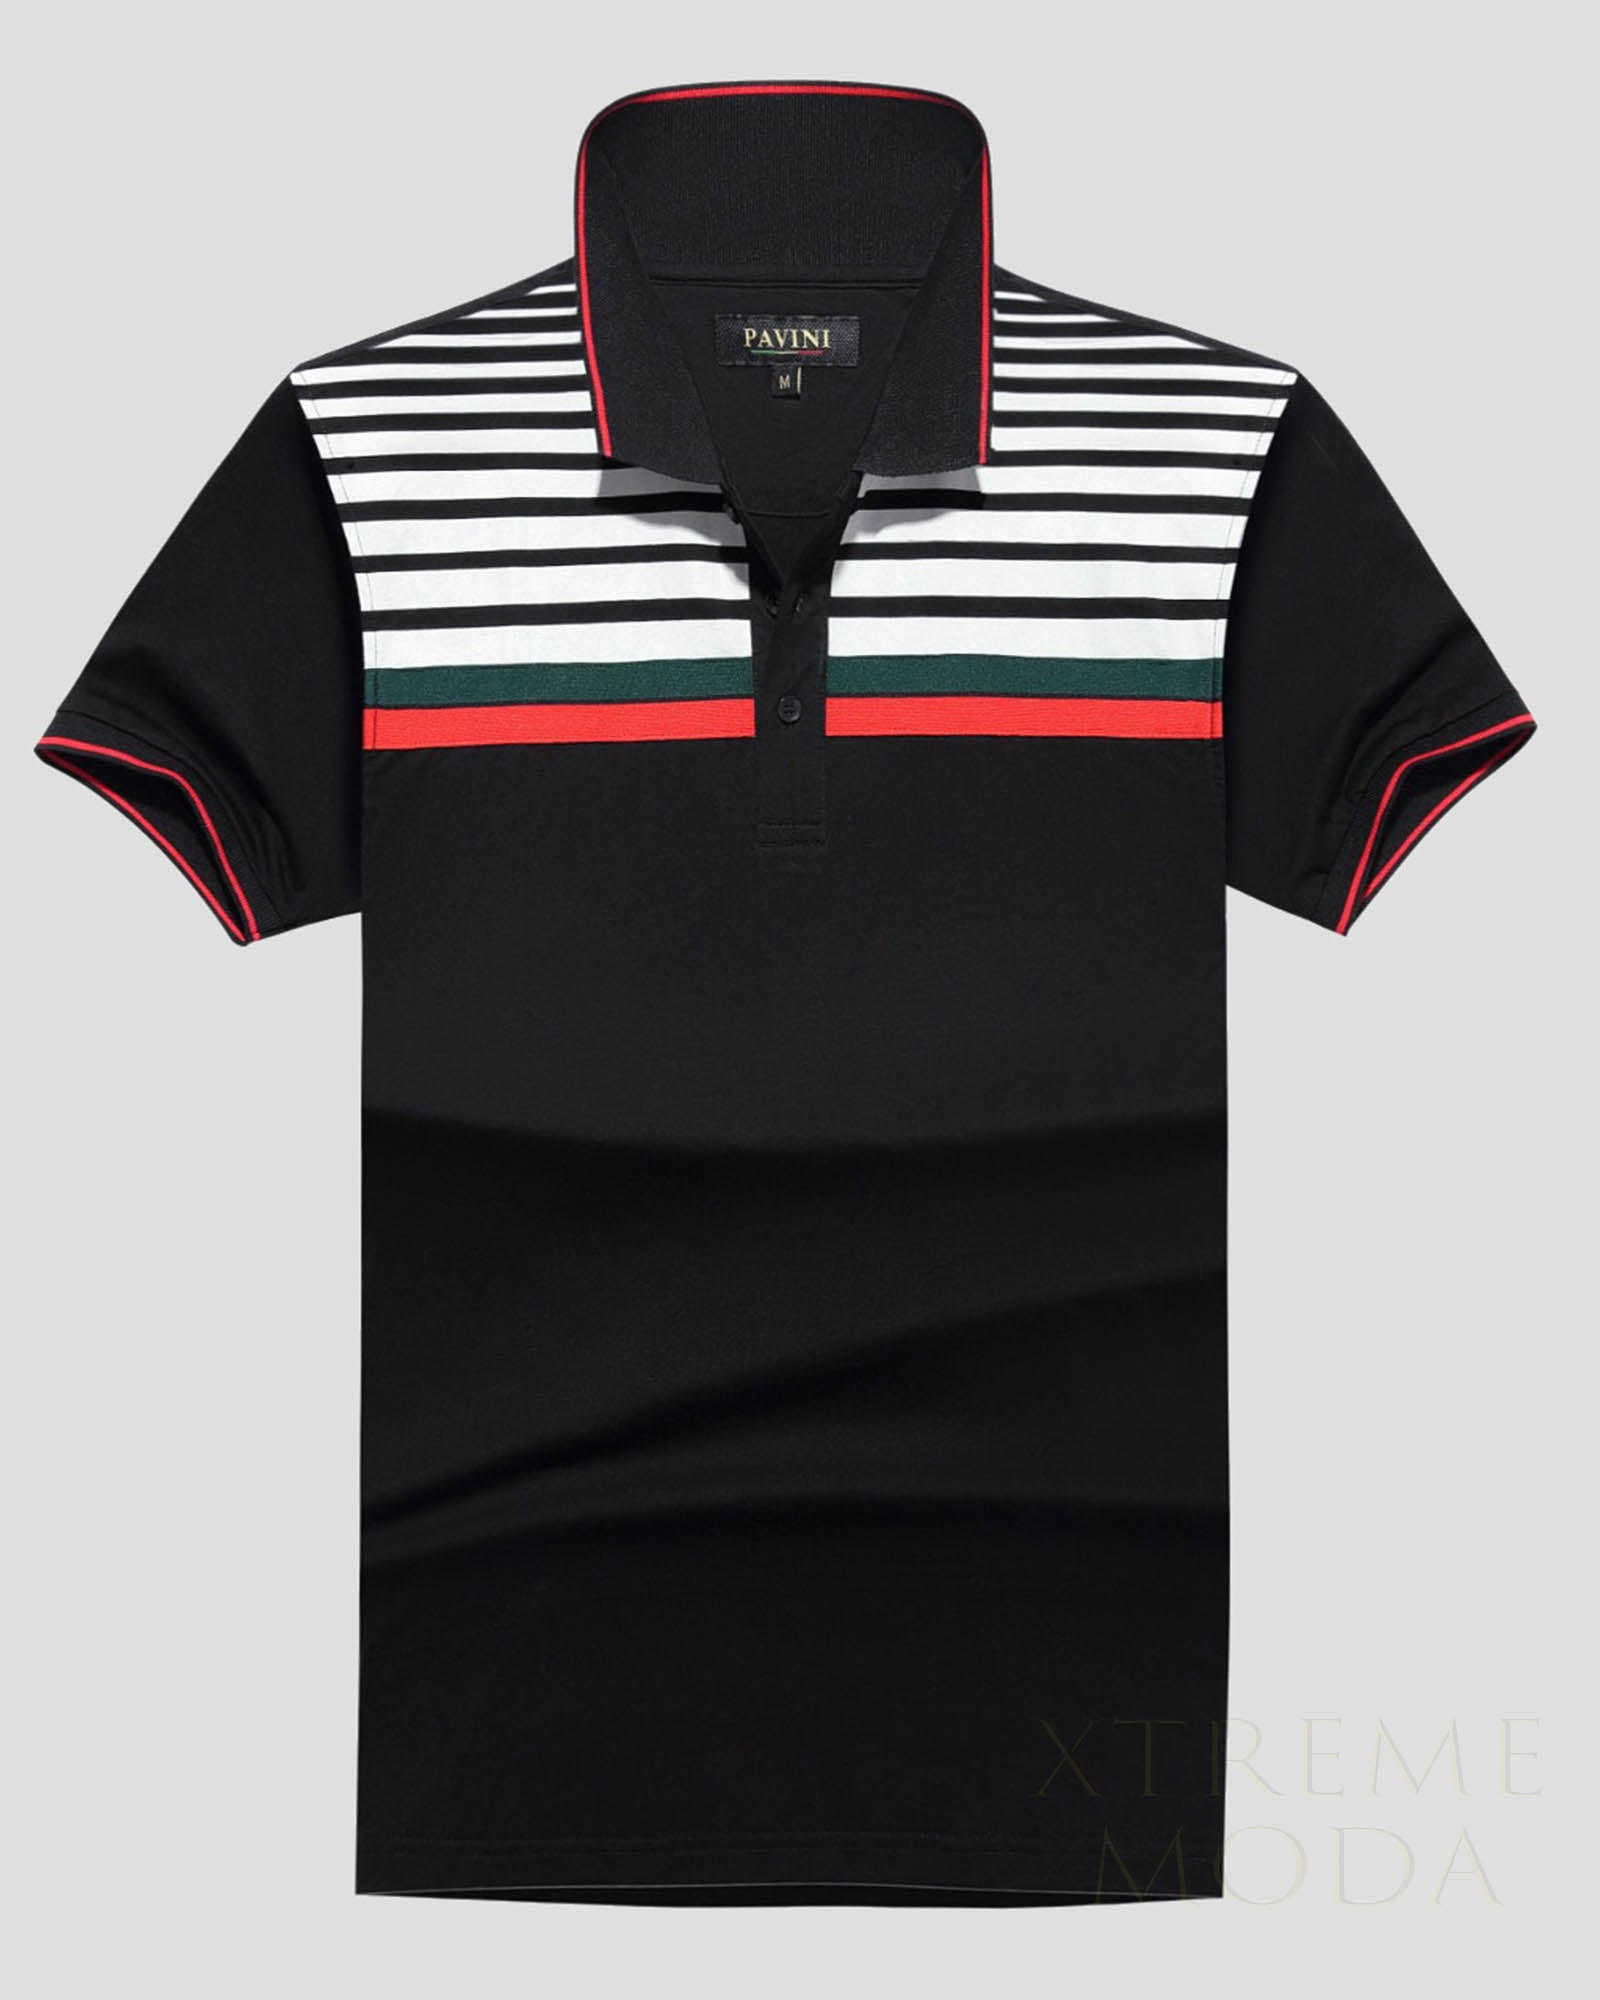 Pavini polo shirt  PT-950 Black